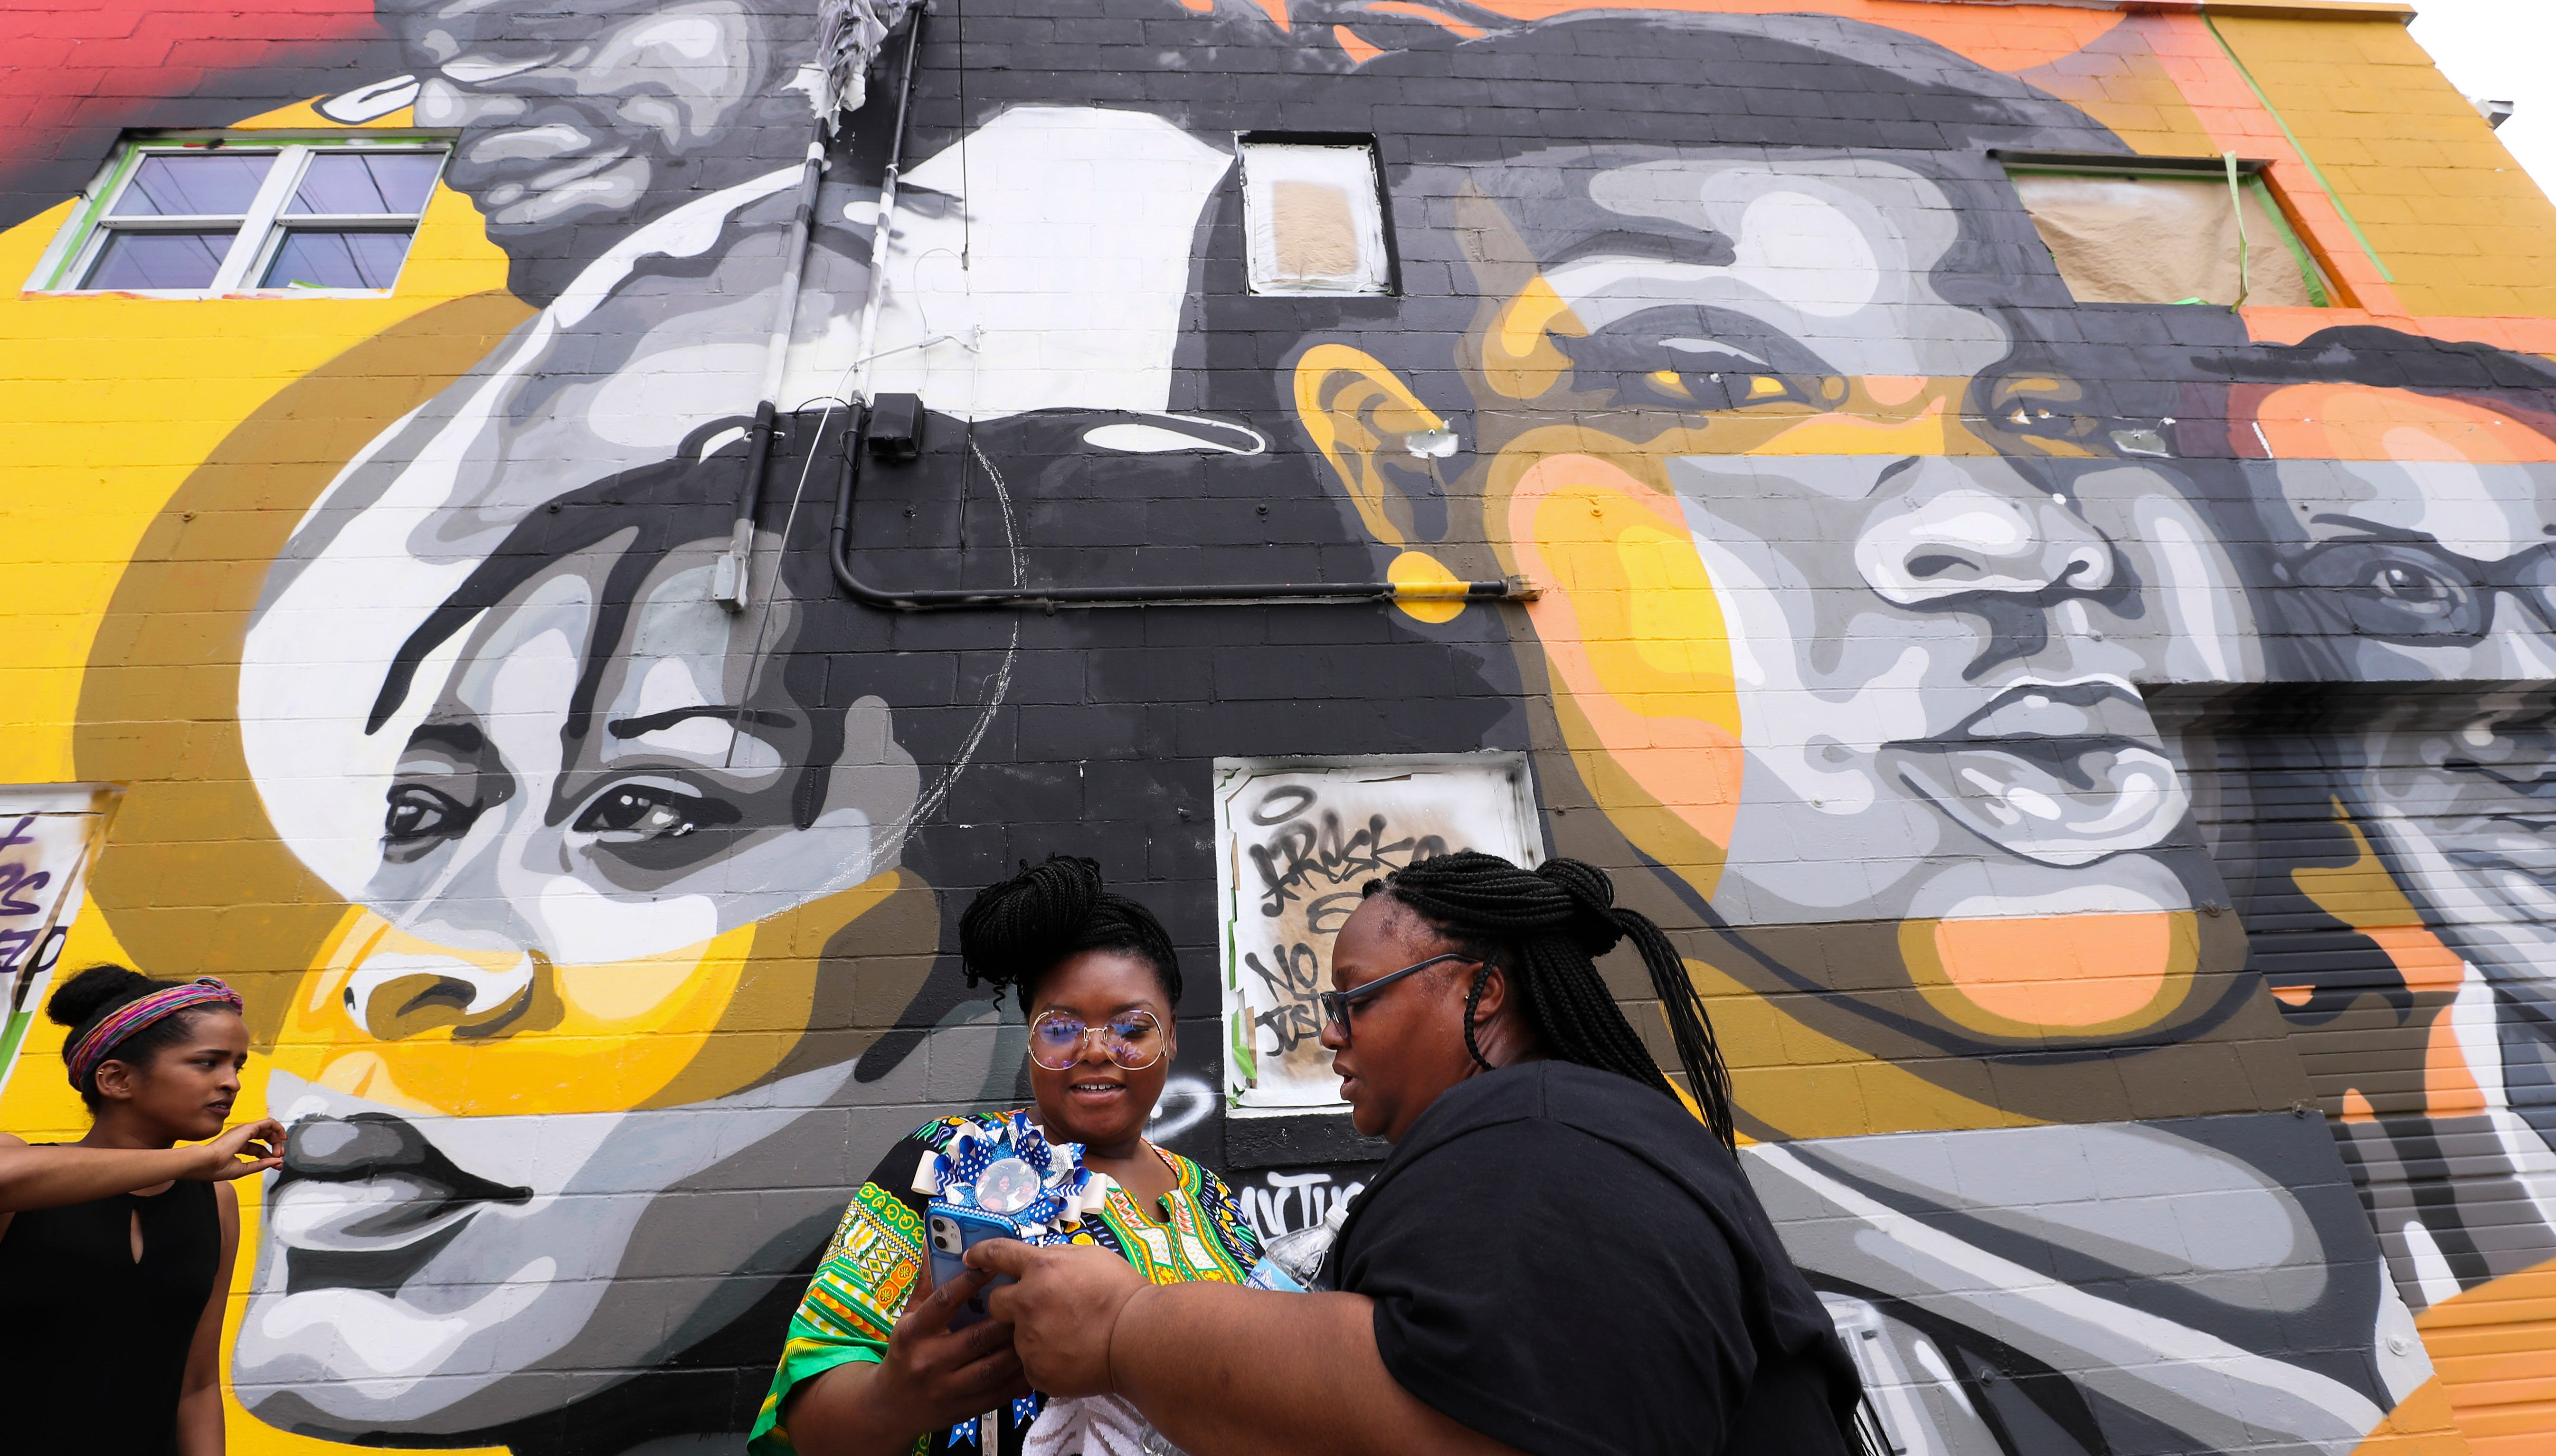 Tahasha Holloway, right, and her sister Bianca Austin looked at cell phone photos they shot as they attended the unveiling of a mural on West Main Street that prominently depicts their niece, Breonna Taylor, and other African Americans who have died at the hands of law enforcement on July 5, 2020.